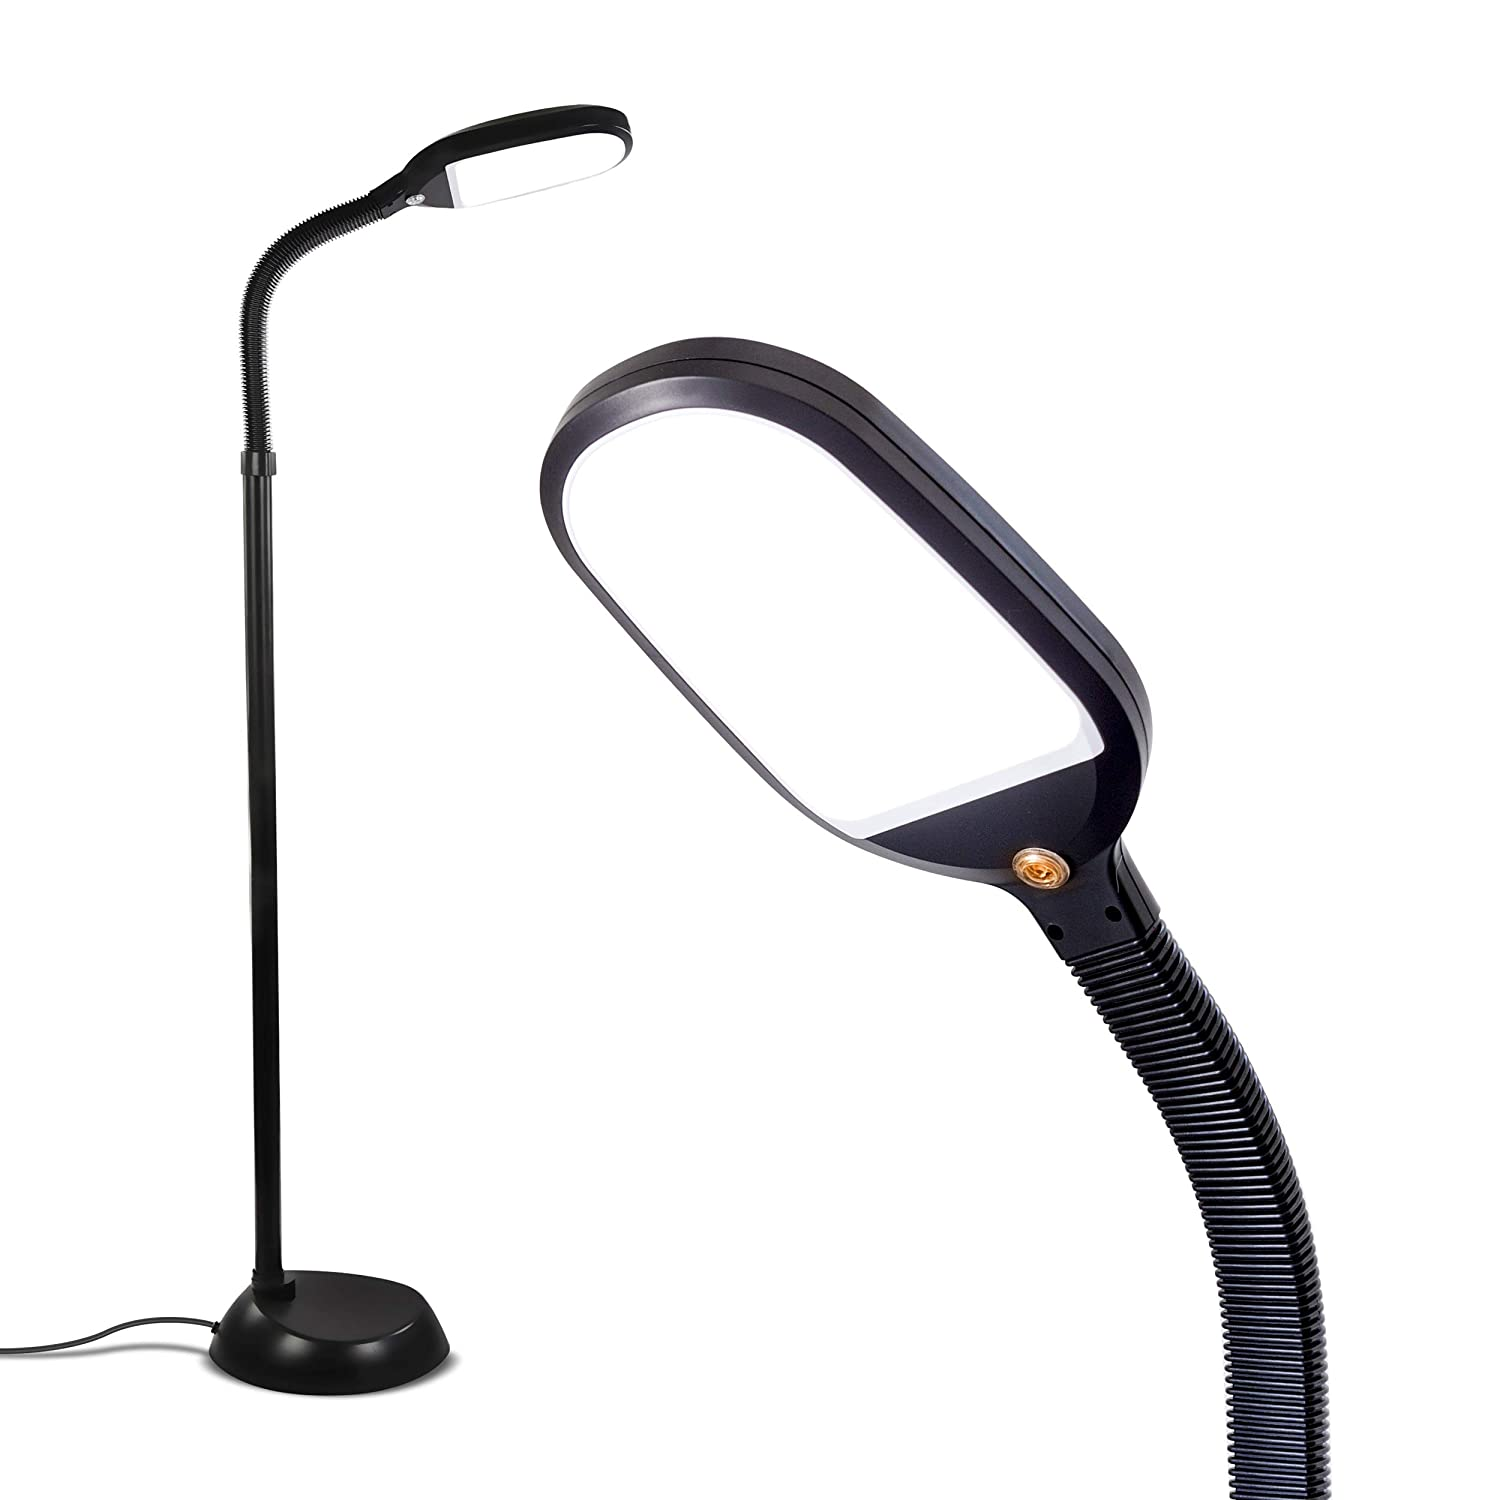 Brightech Litespan LED Bright Reading and Craft Floor Lamp - Modern Standing Pole Light - Dimmable, Adjustable Gooseneck Task Lighting Great in Sewing Rooms, Bedrooms - Black